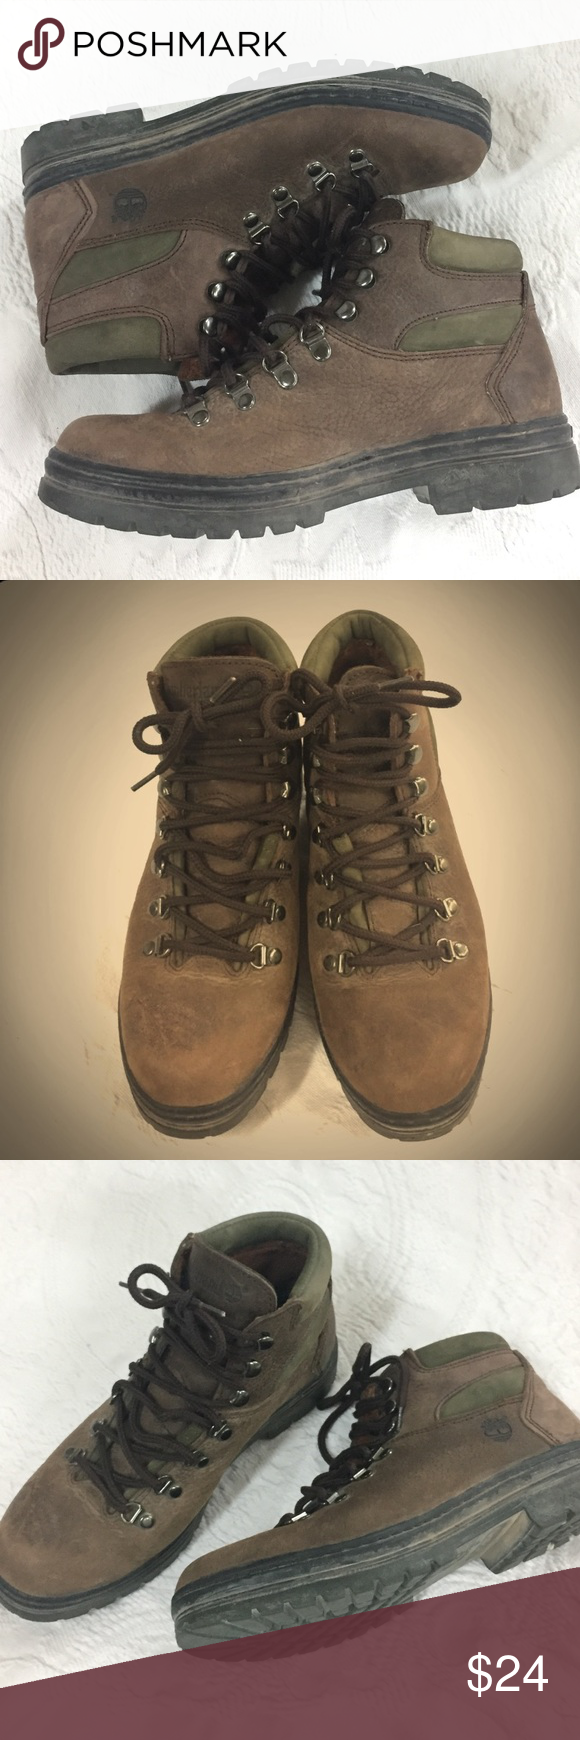 5a1ac0a502a3b 1990s Vintage Timberland Logger Hiking Boots Preloved but still in good  condition. Treads in very good condition. Women's size 9. Men's size 7.